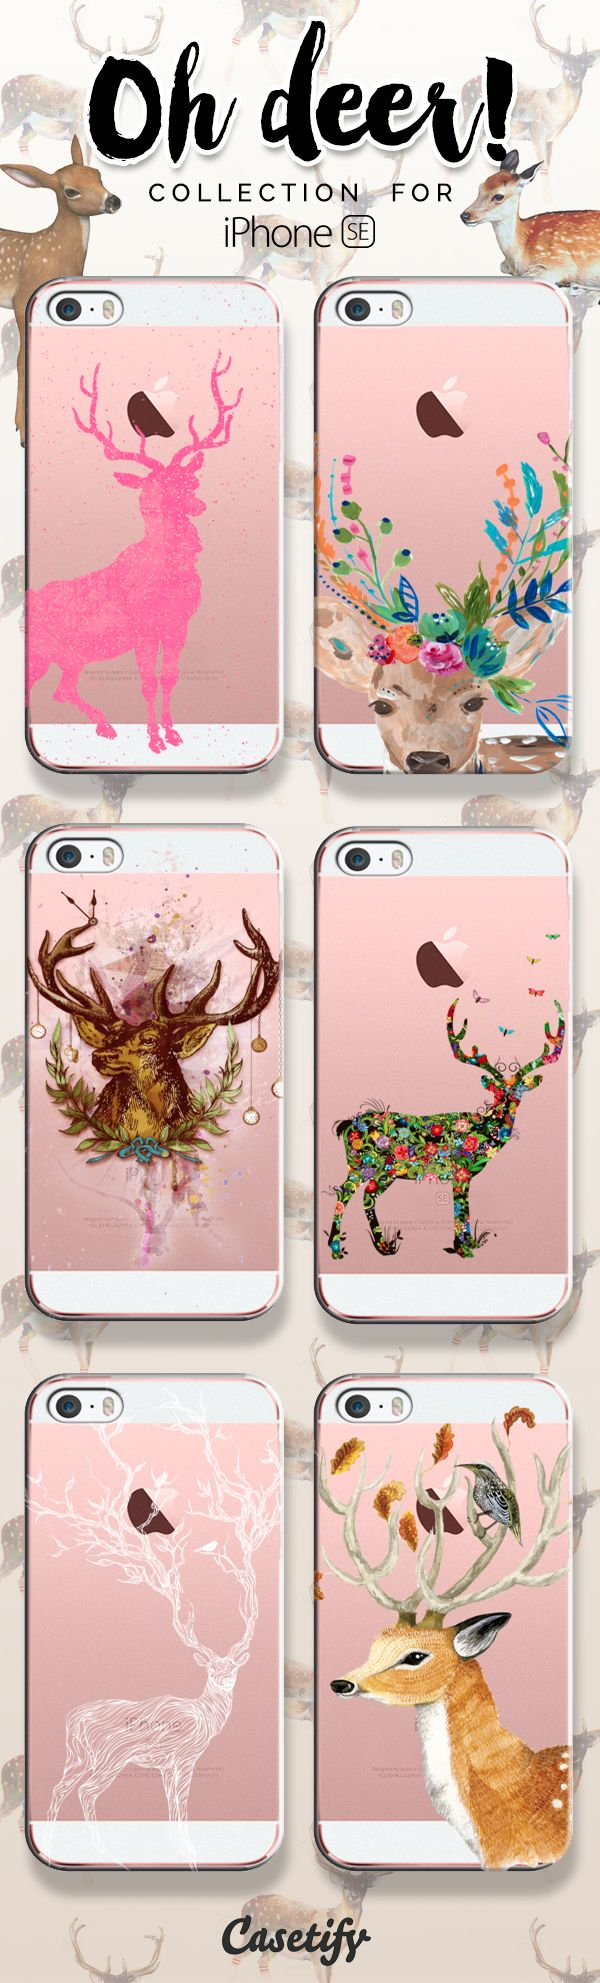 Oh deer! Take a look at these cases featuring deers on our site now!  https://www.casetify.com/artworks/VDKia1doTL   @casetify